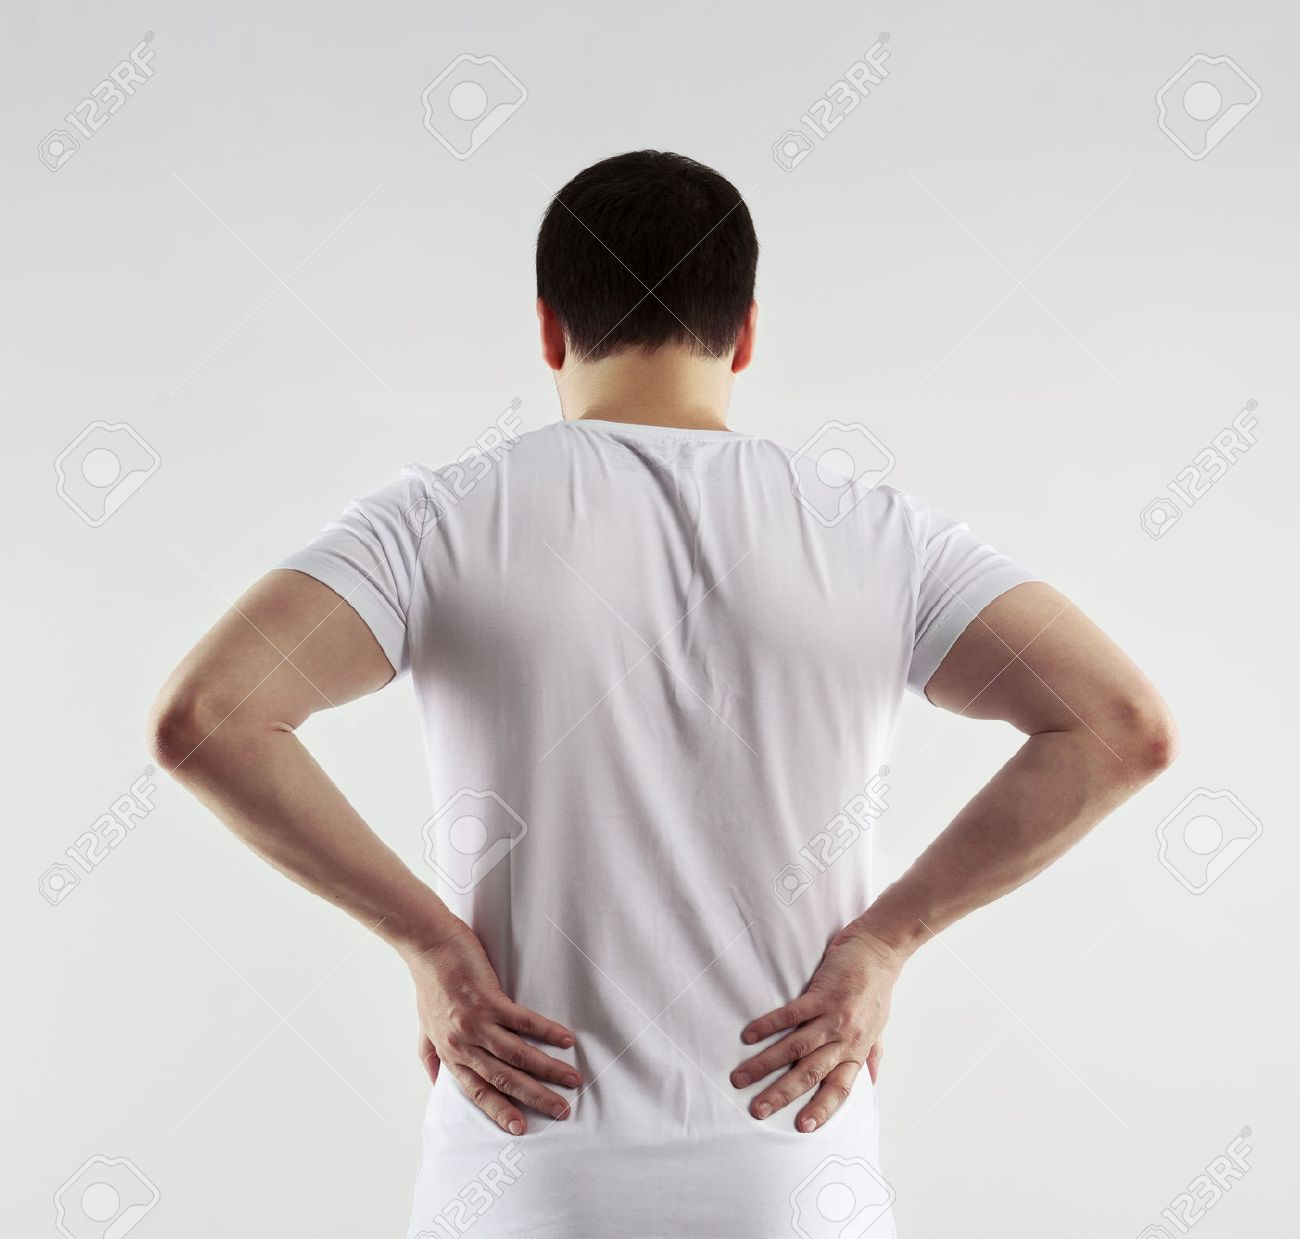 Male painful back and loin. Young man touching his body in pain. Nerve spasm. Chronic ache concept. - 40066555